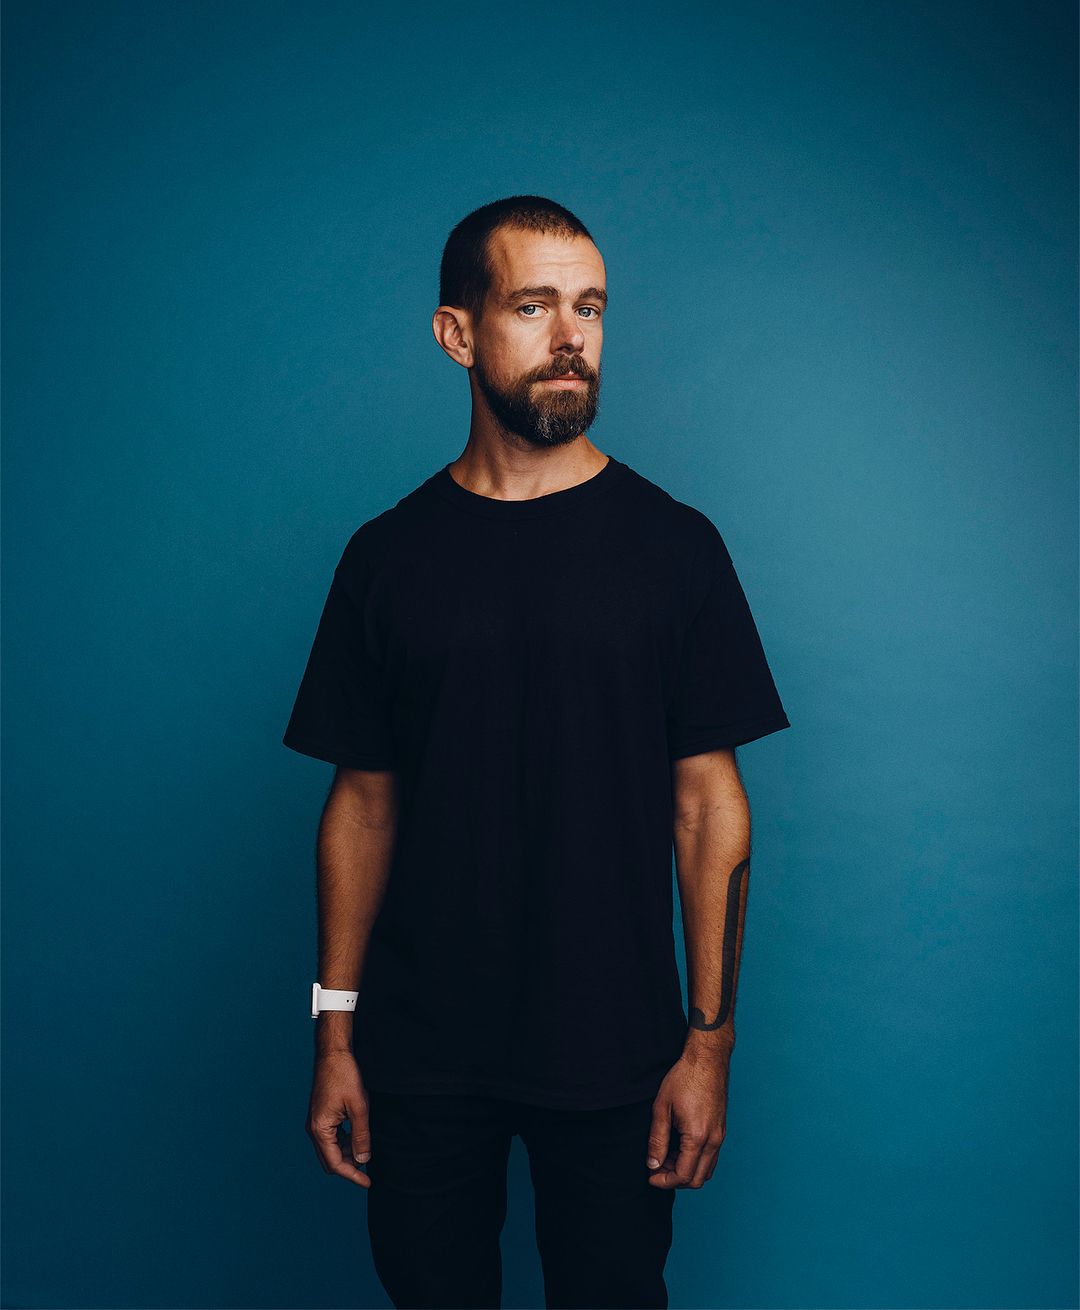 Jack Dorsey Twitter Images Hd Whatsapp Wishes Sms Quotes Facebook Instagram Whatsapp Image